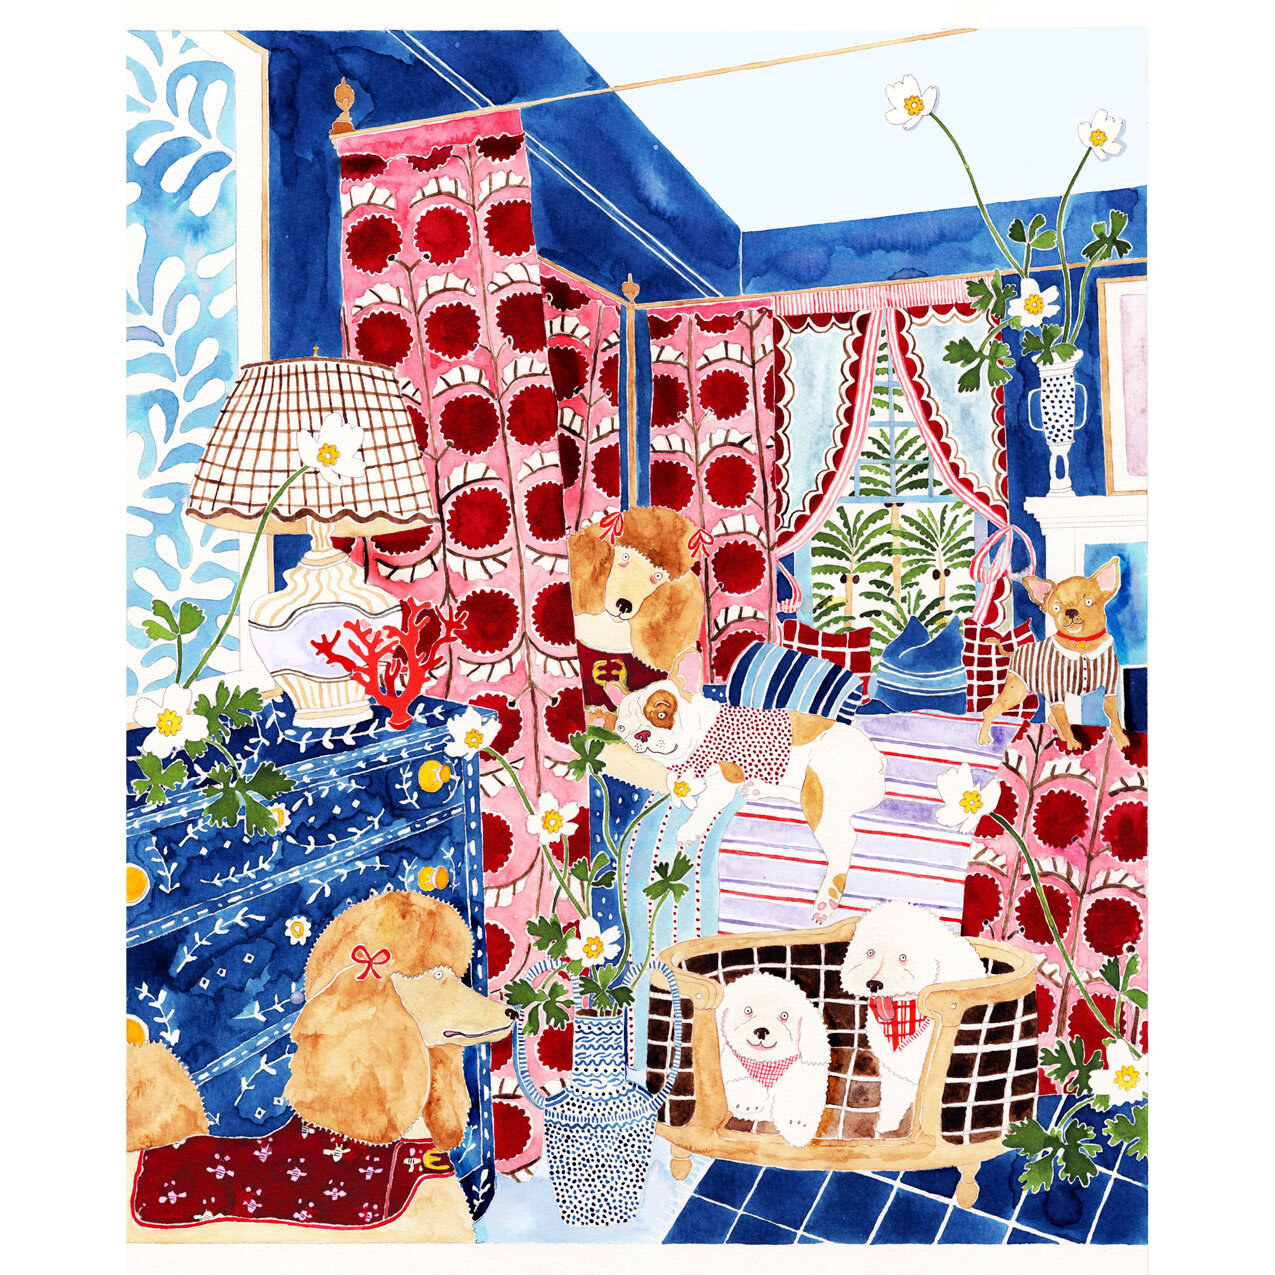 Watercolor and pencil artwork of dogs in a colorful bedroom